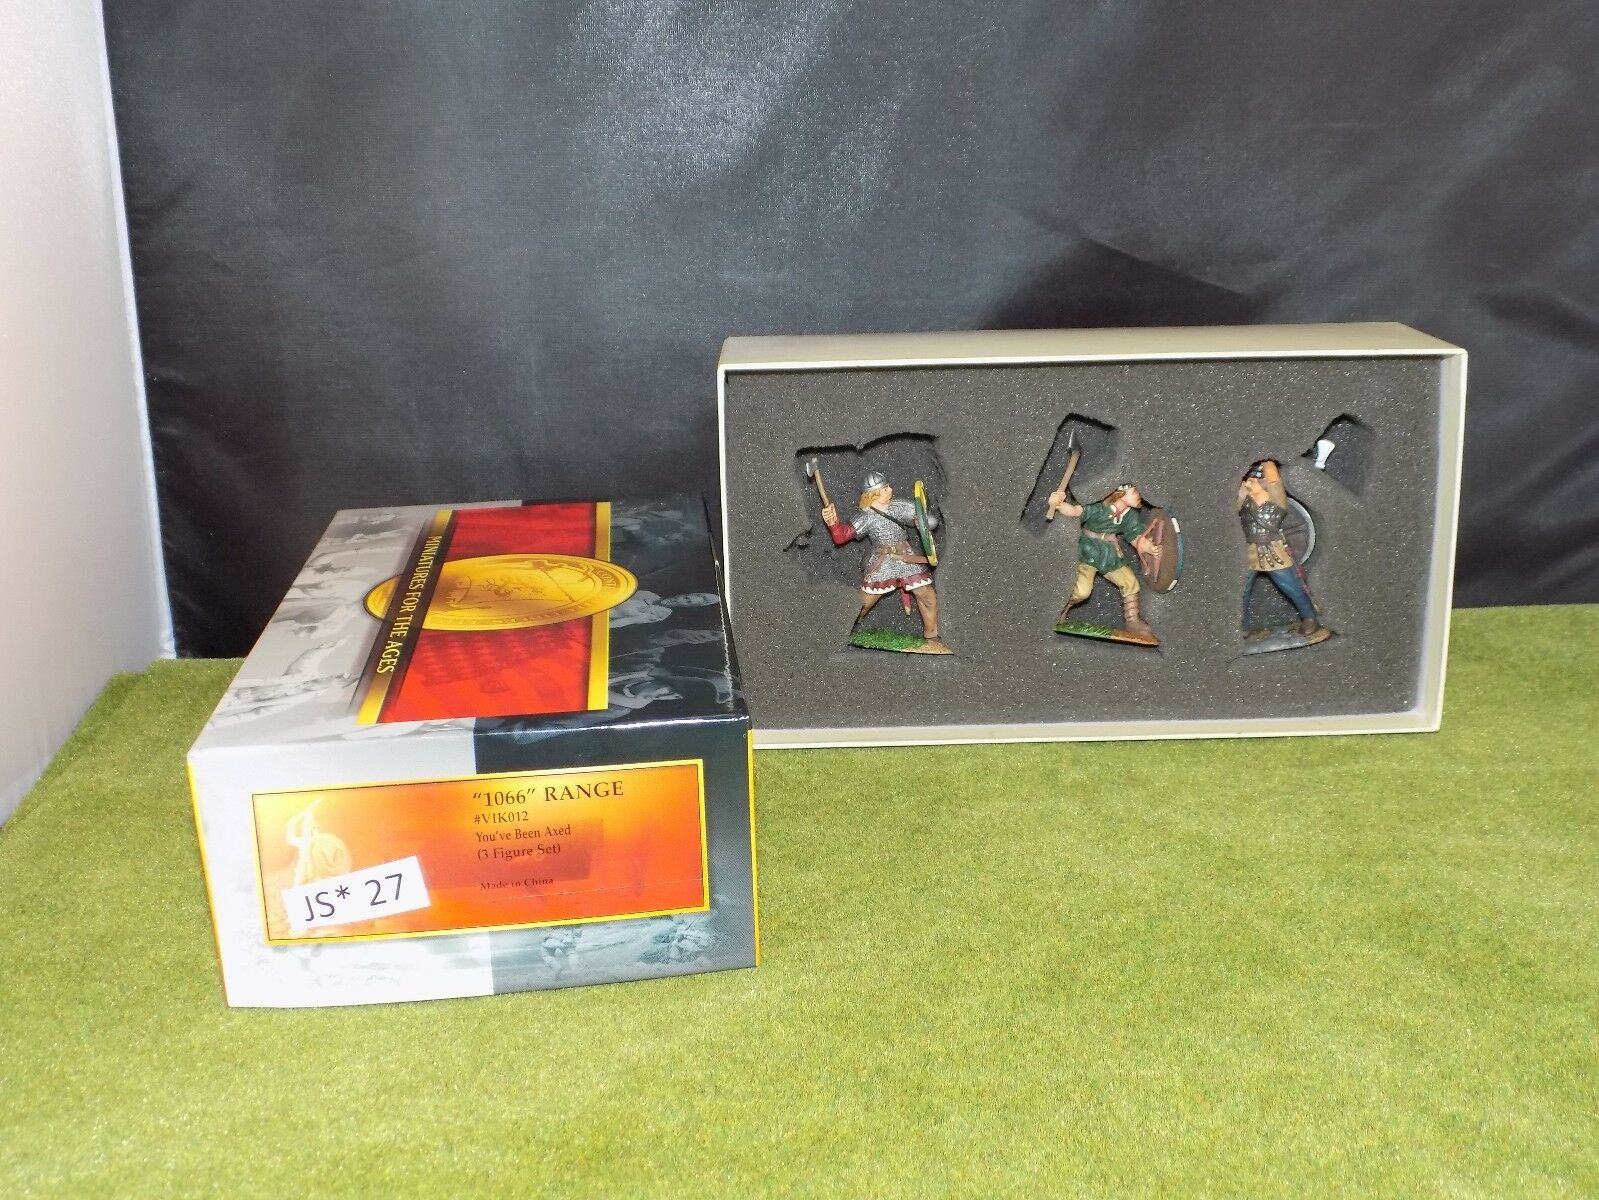 Conte Collectibles 1066 VIK012 YOU'VE BEEN AXED set of 3 with box (JS 27)